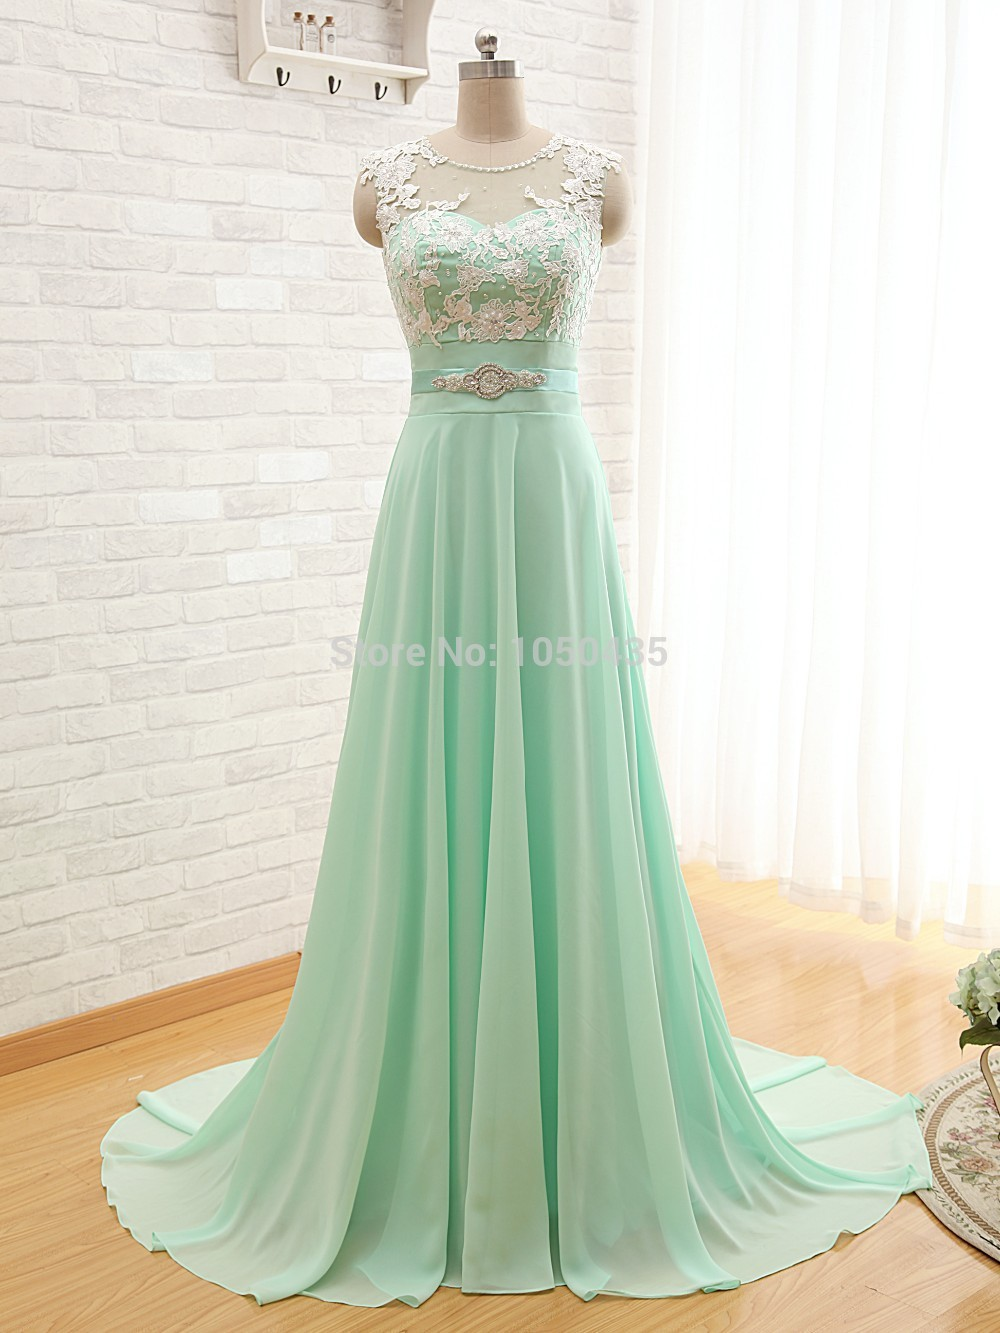 promotion modest turquoise bridesmaid dress long robe demoiselle d honneur real pictures vestido. Black Bedroom Furniture Sets. Home Design Ideas